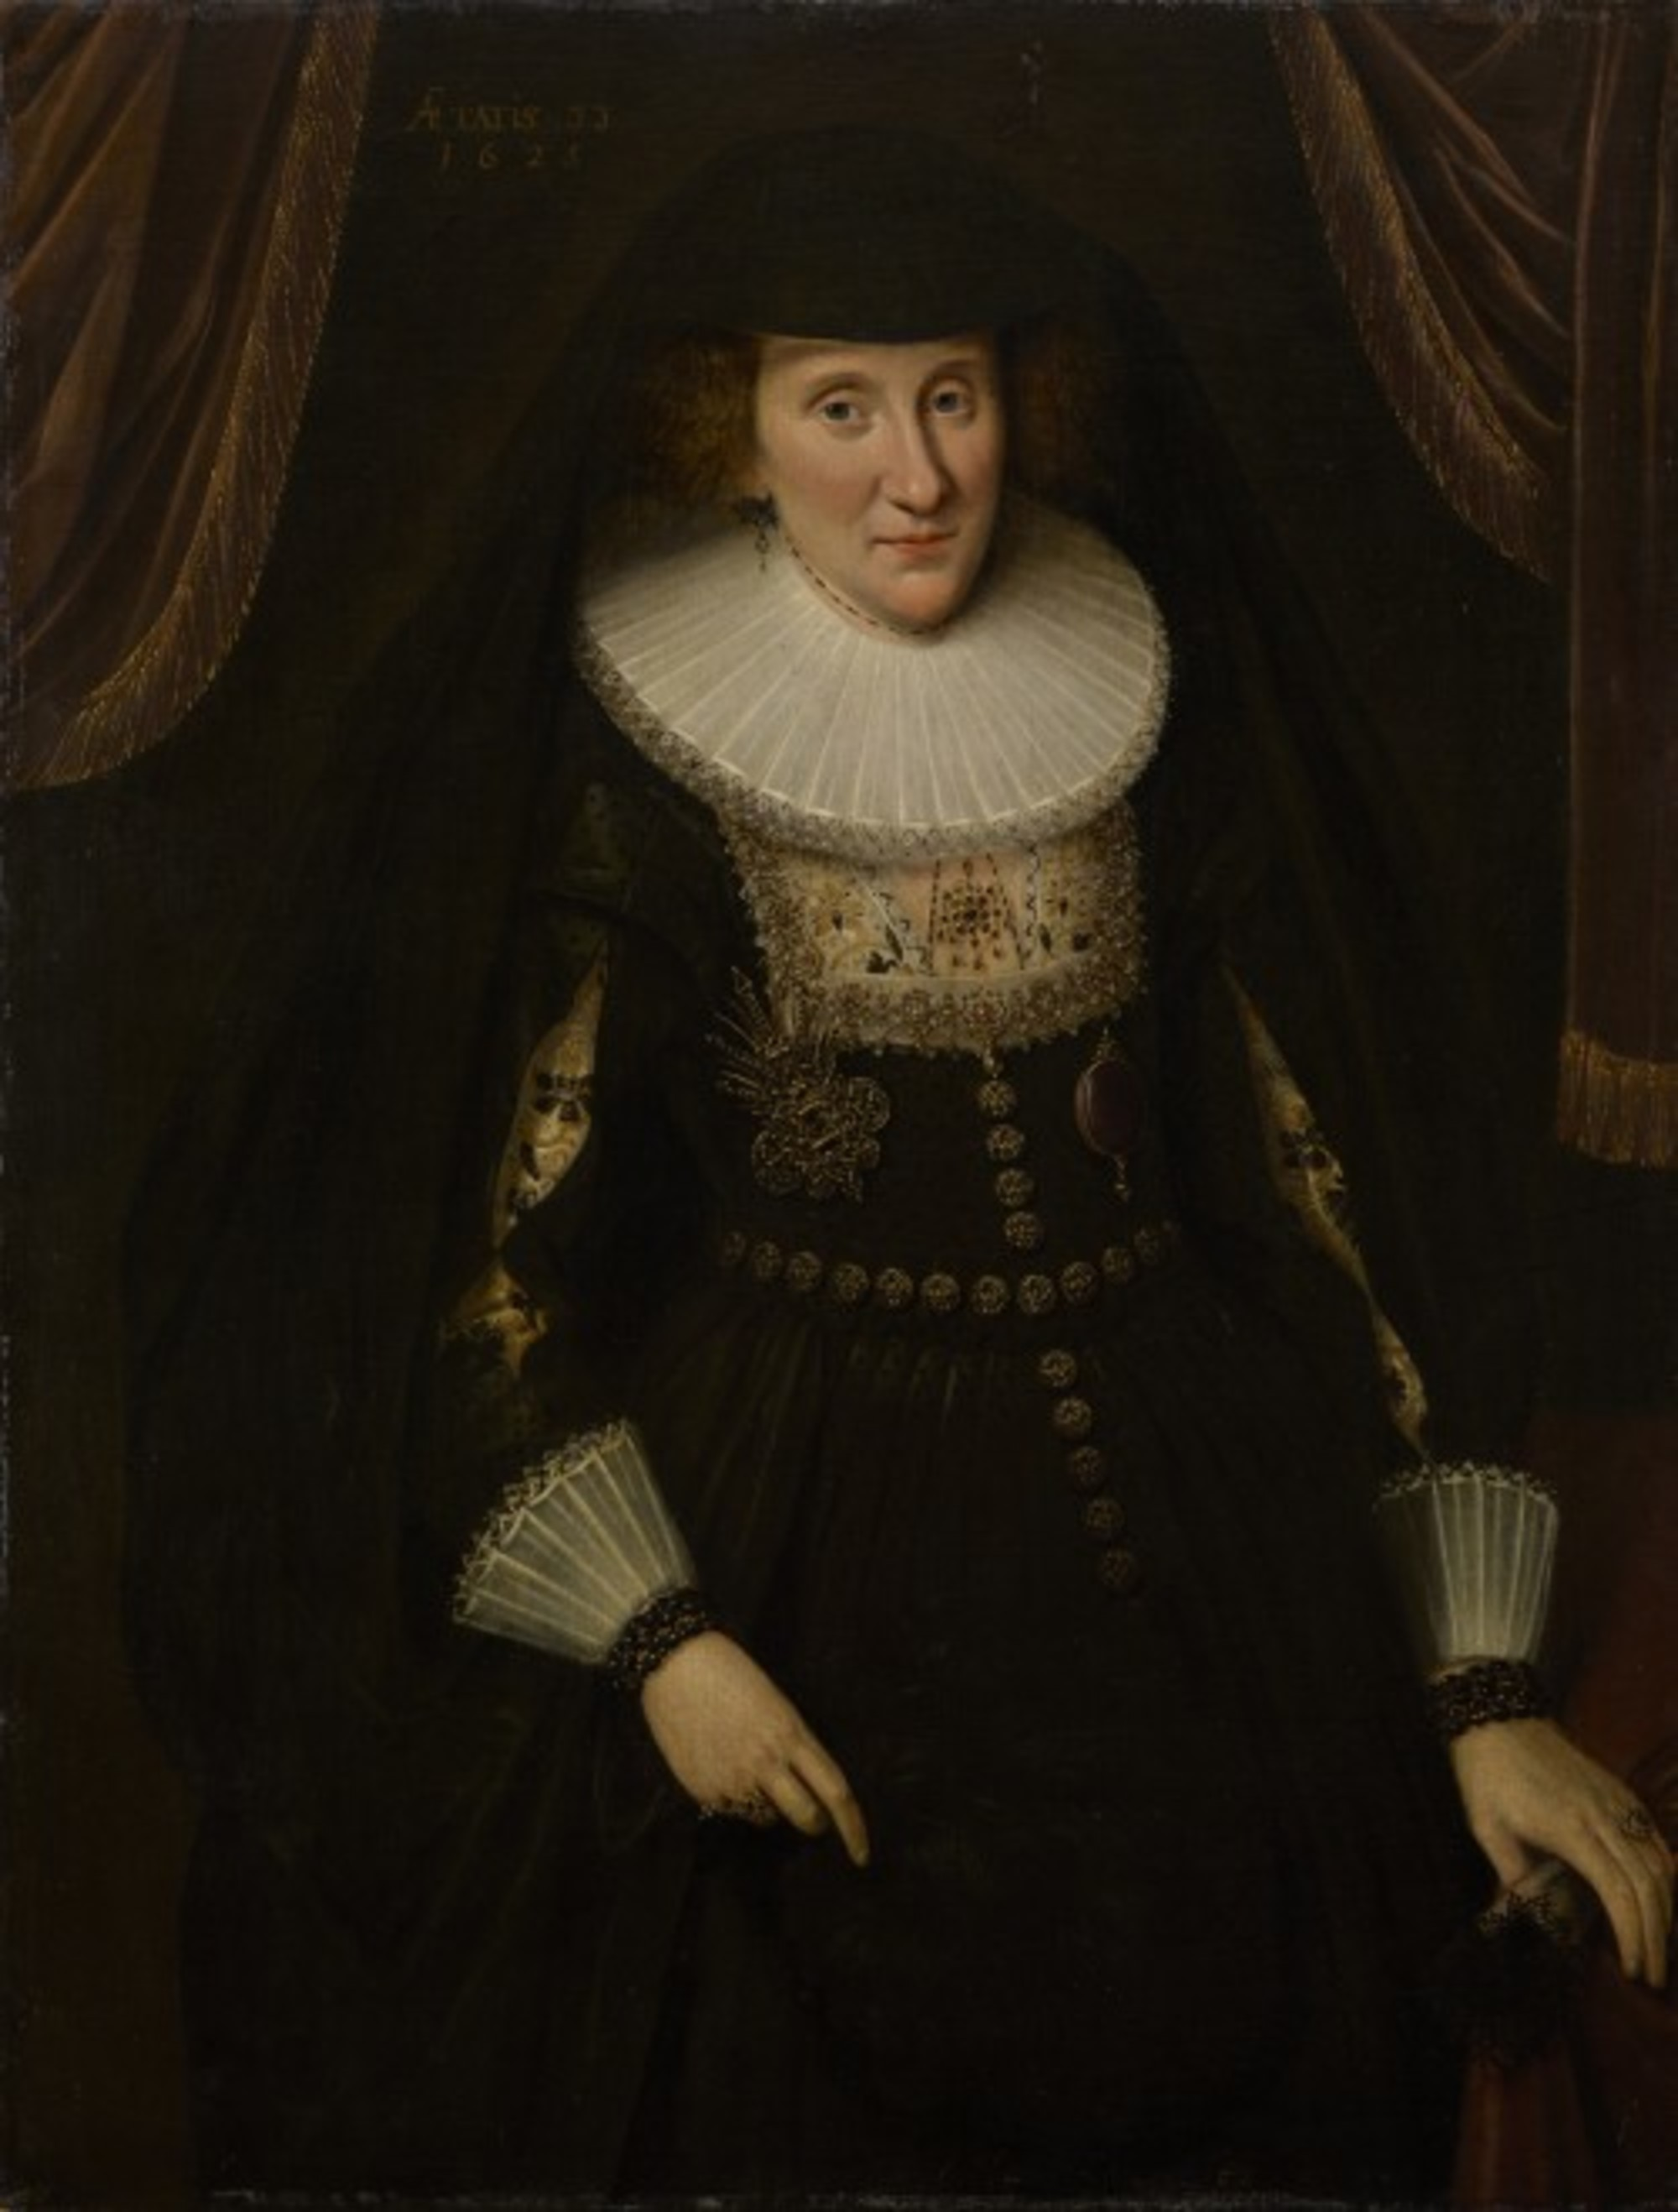 Lady-anne-hay-countess-of-winton-about-1592-1625-1.jpg